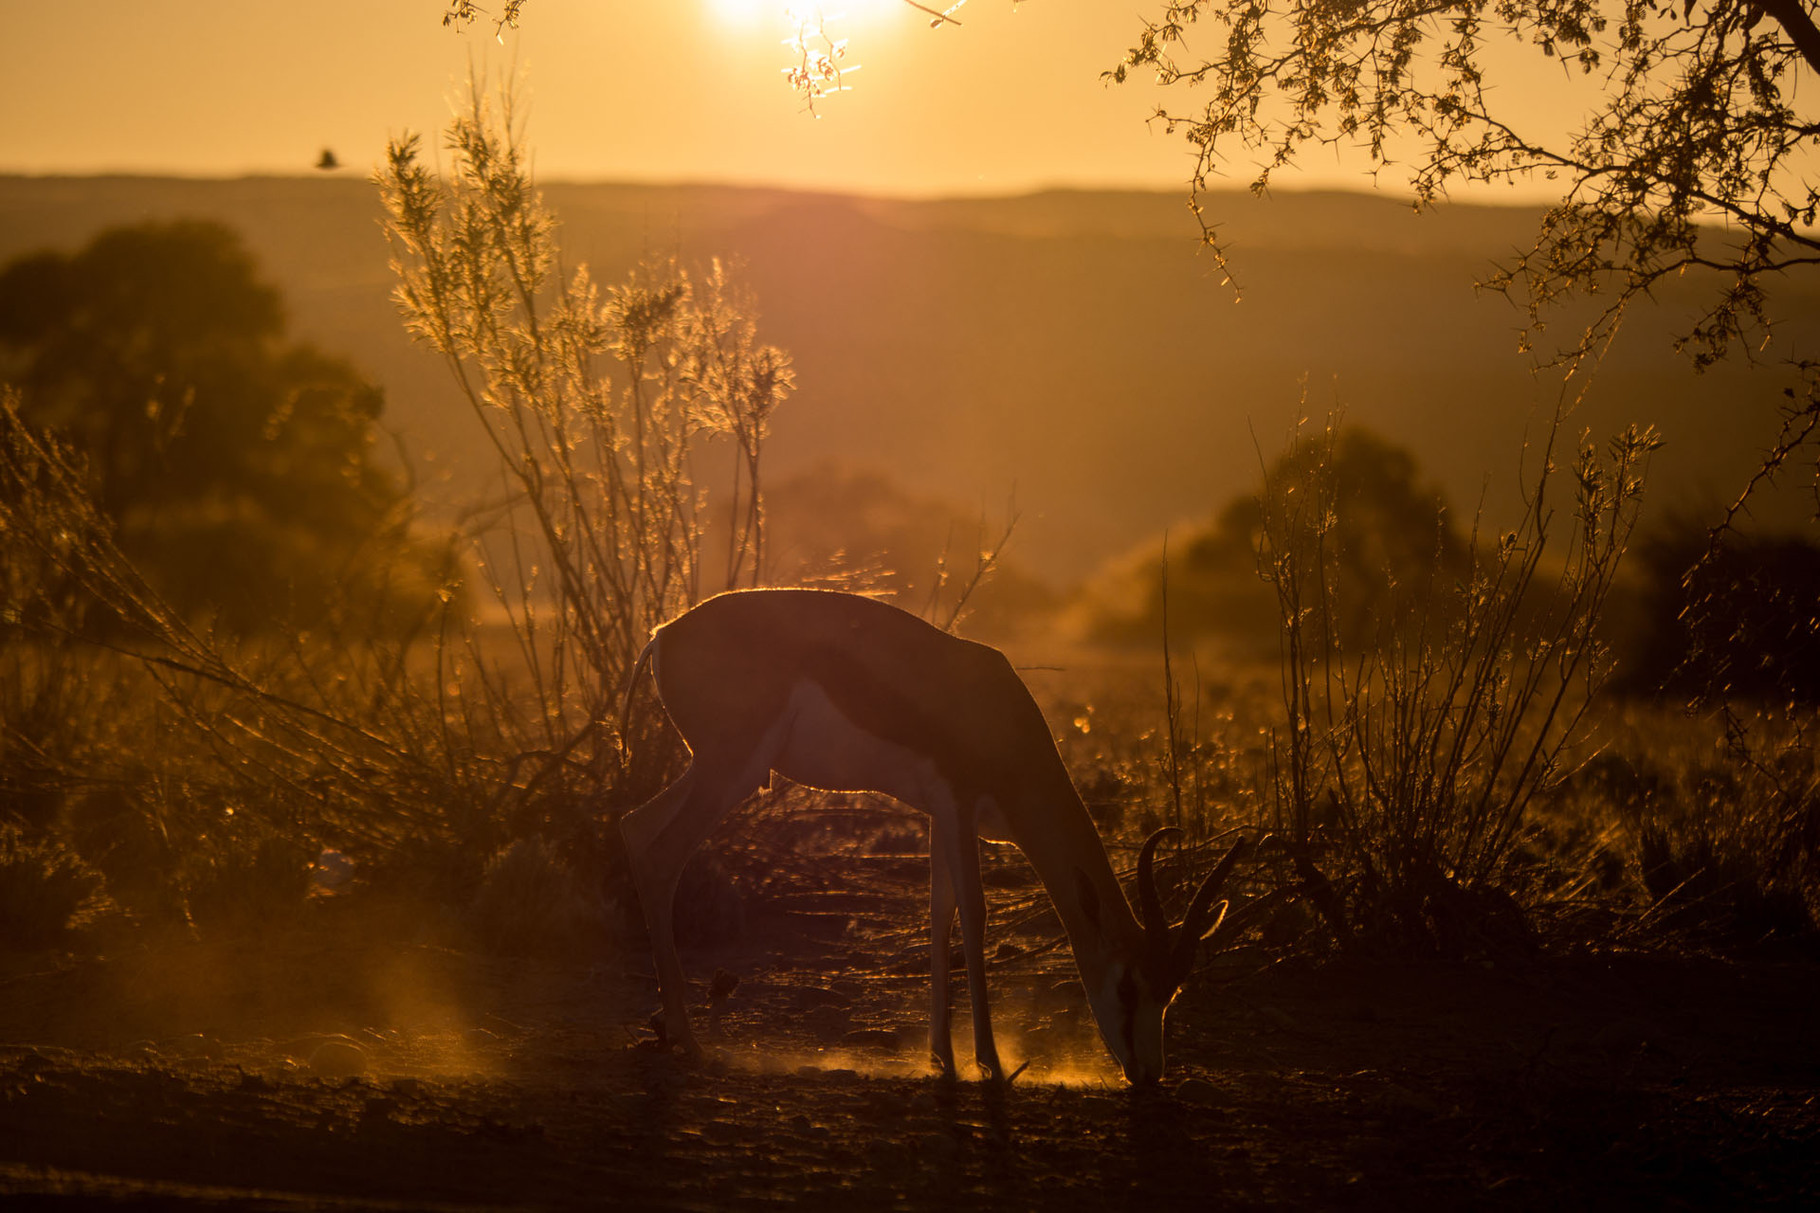 Grazing gazelle at sunset